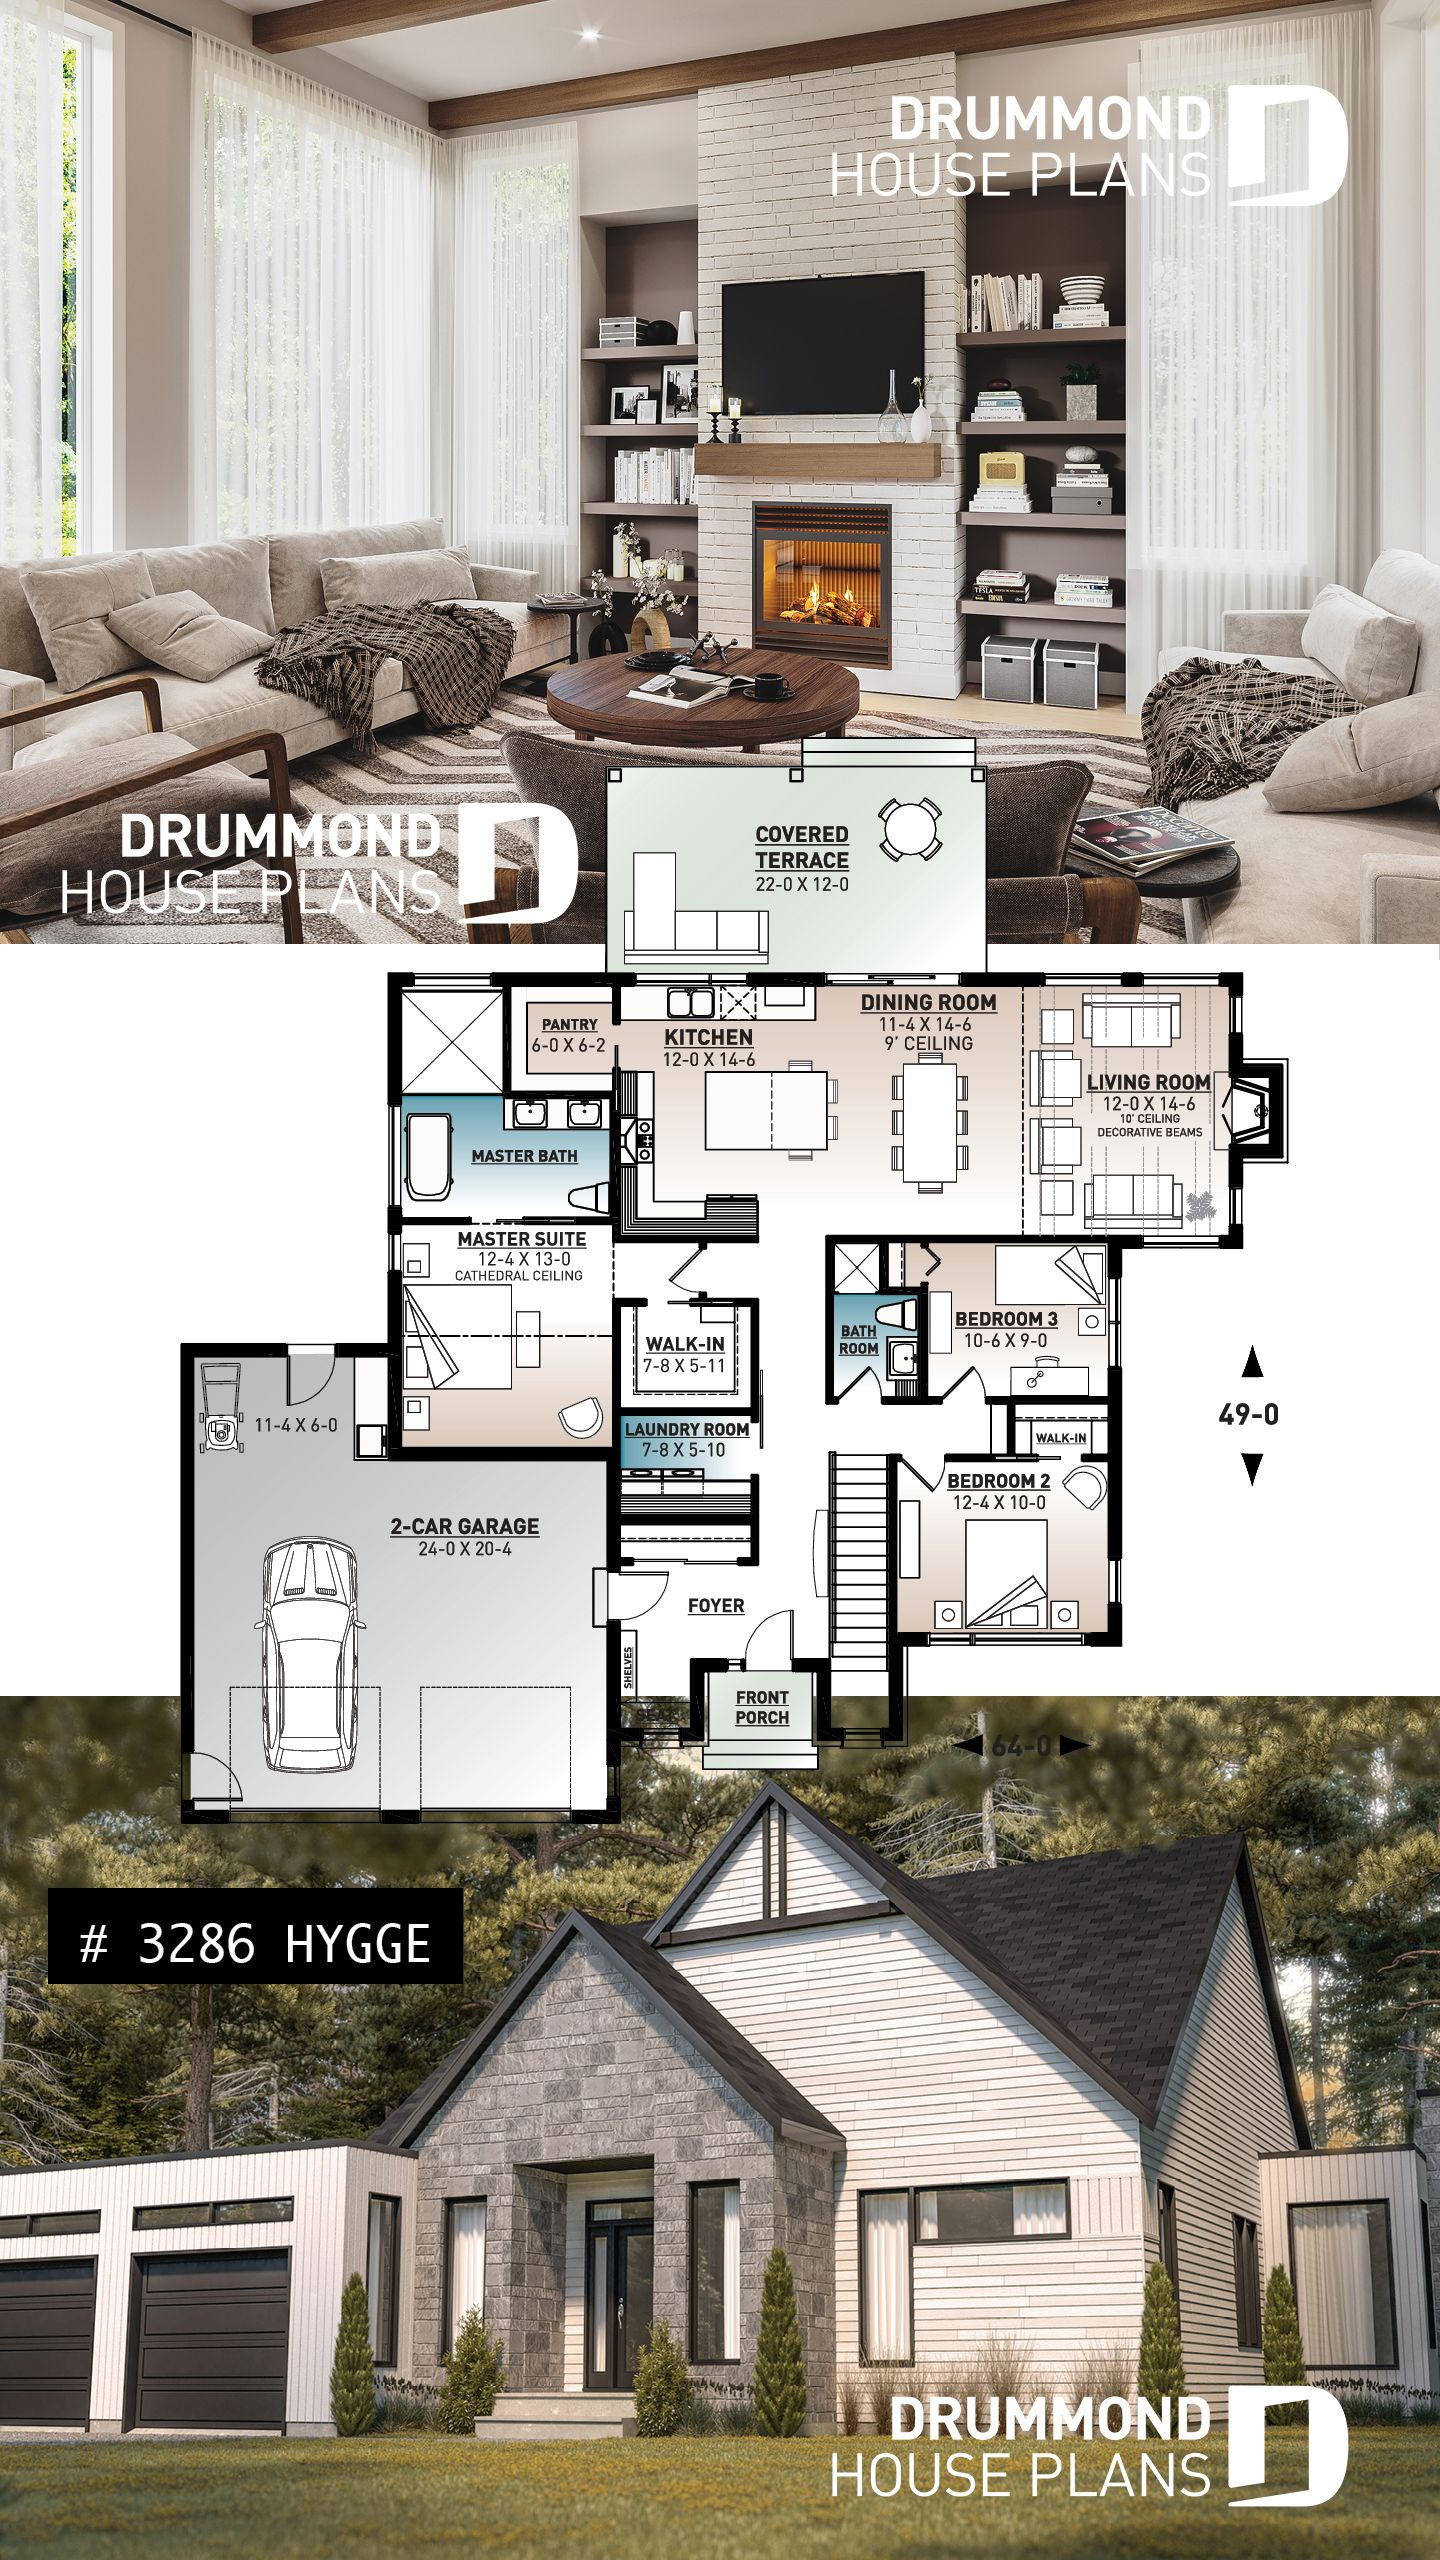 Discover The Plan 3286 Hygge Which Will Please You For Its 3 Bedrooms And For Its Scandinavian Styles Bungalow House Plans Cottage House Plans Craftsman House Plans